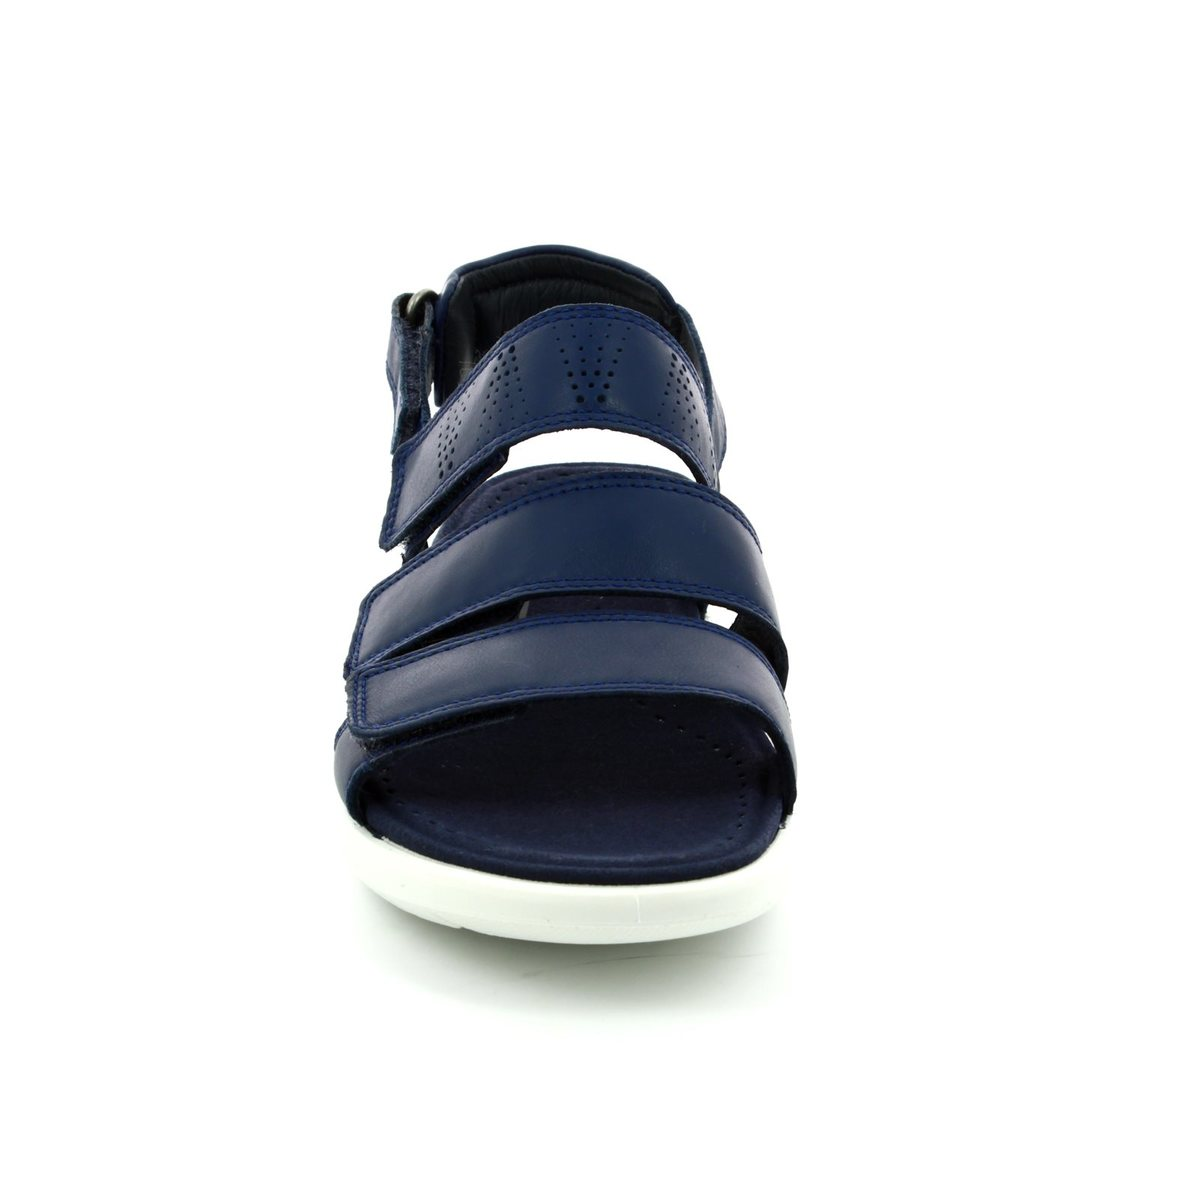 d759cca57c8c ecco soft 5 navy for sale   OFF74% Discounts